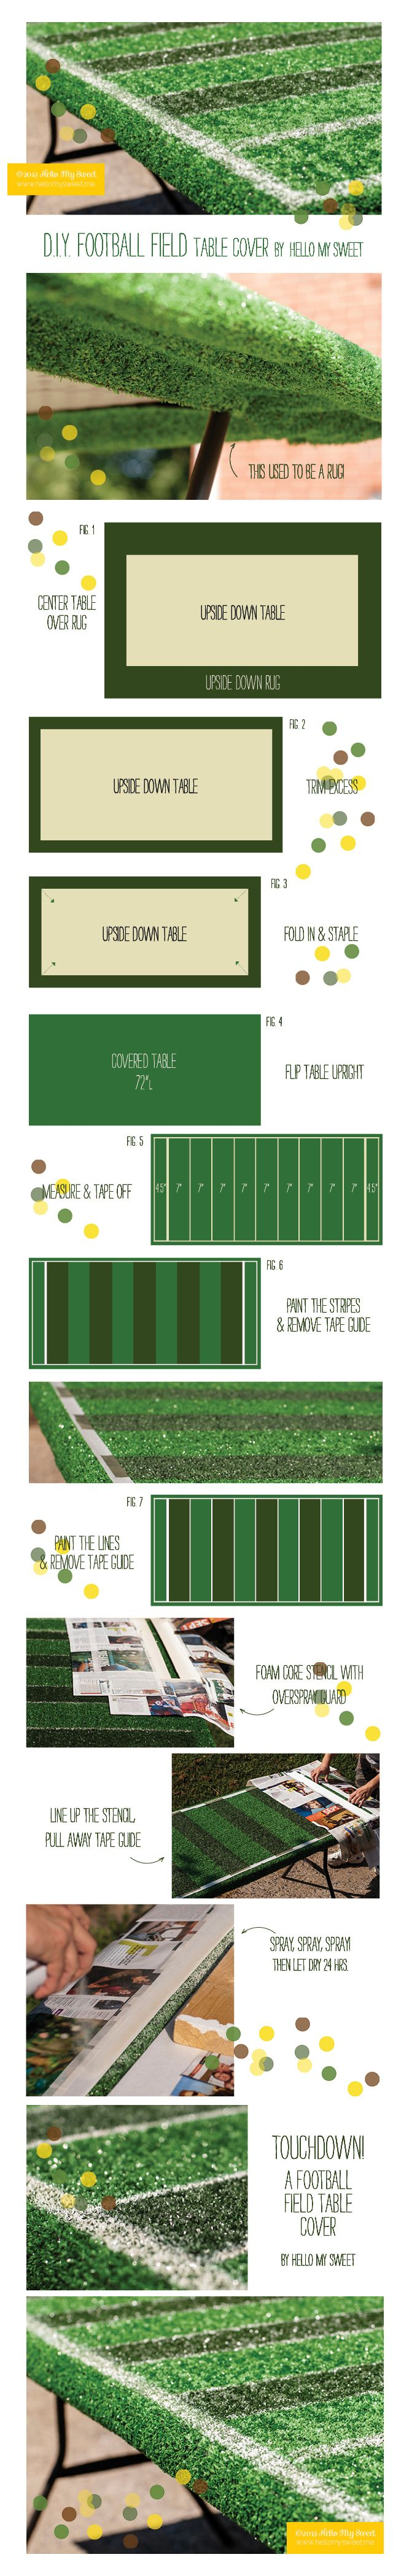 Here's a different way to do a football field table cover for a Super Bowl party or tailgate.